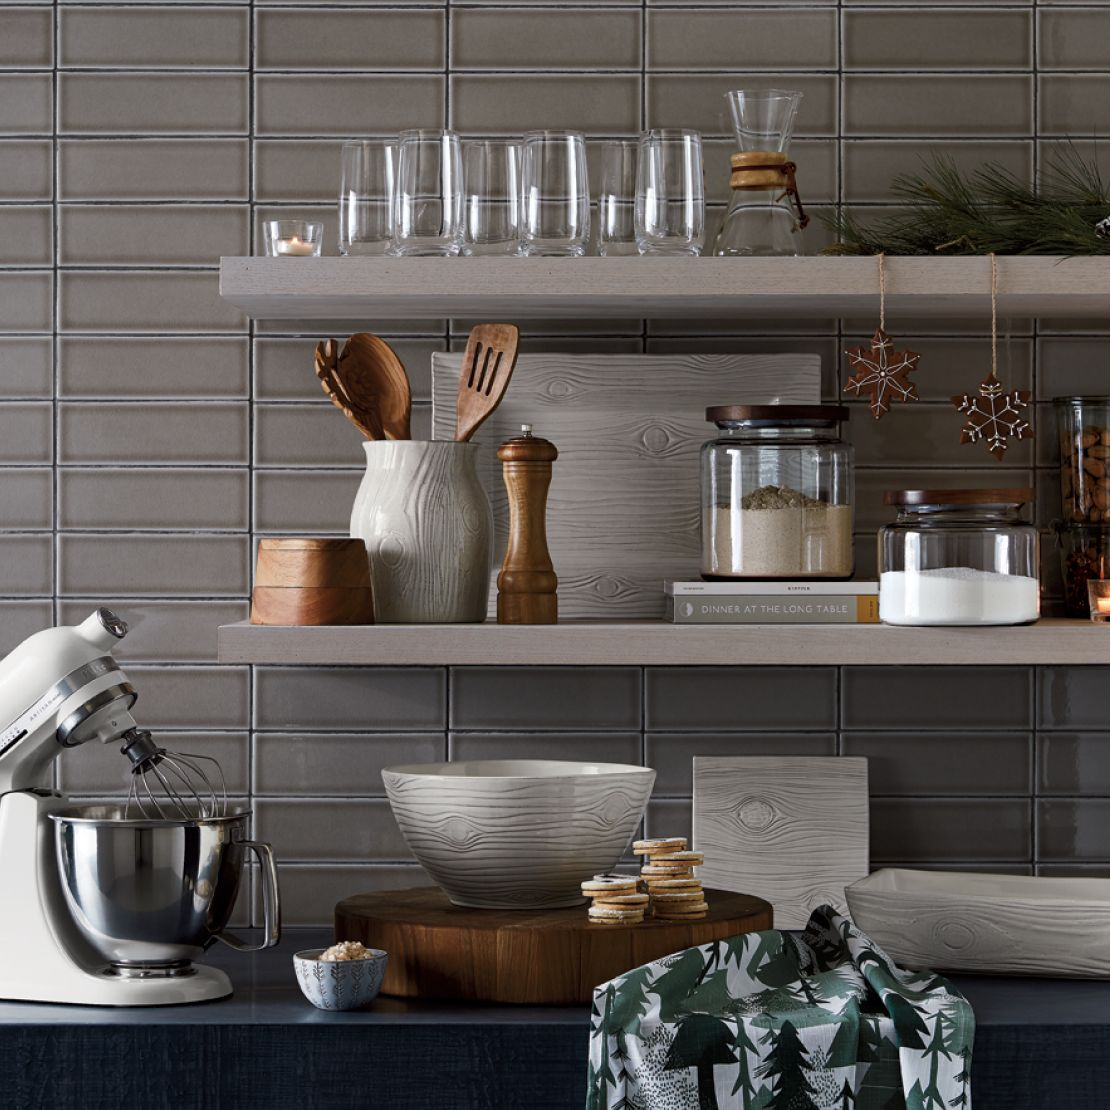 housewares and kitchen store crate and barrel